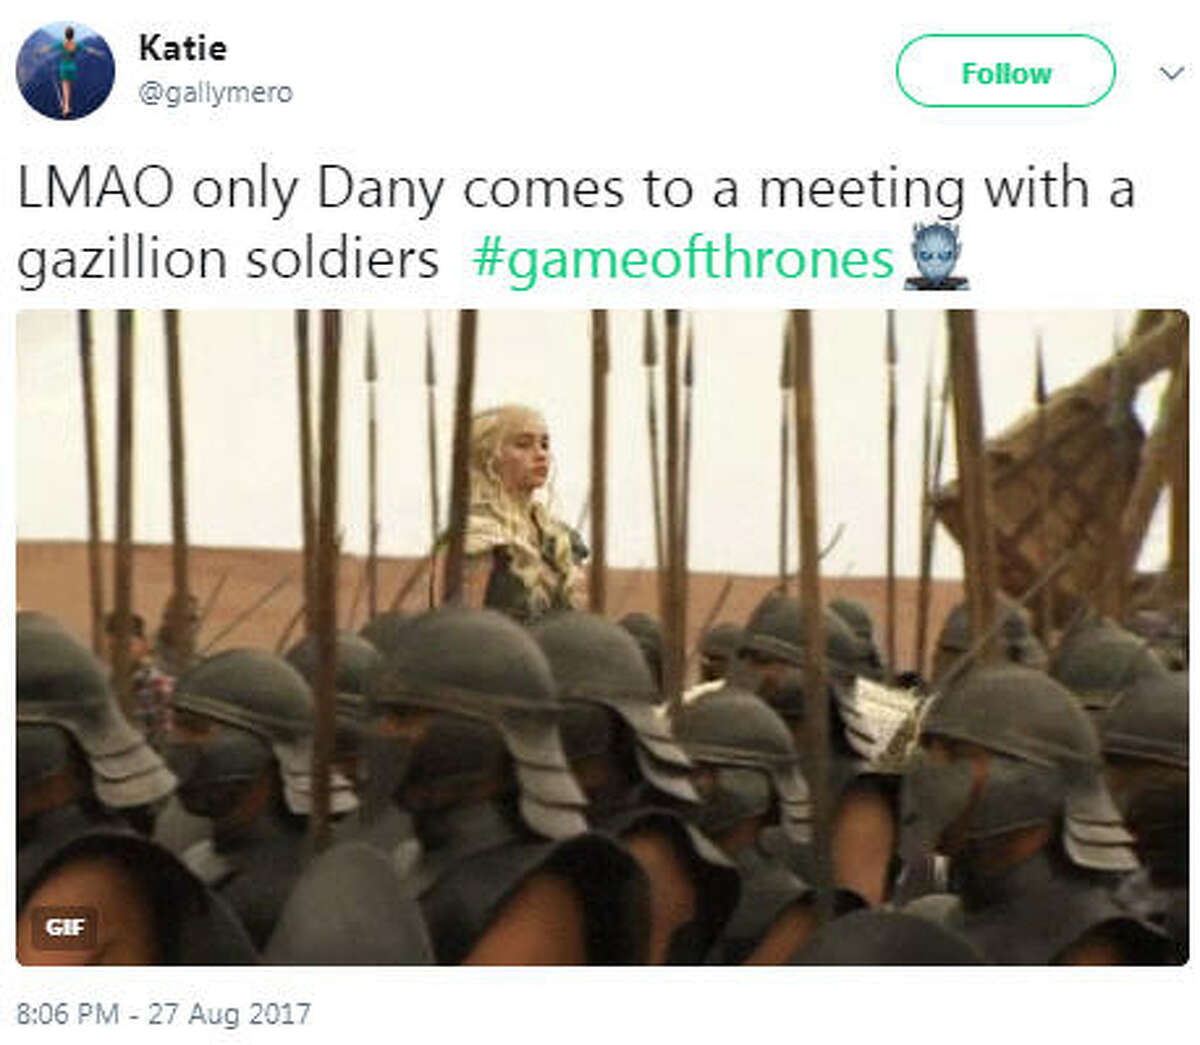 """""""LMAO only Dany comes to a meeting with a gazillion soldiers #gameofthrones"""" Source: Twitter"""